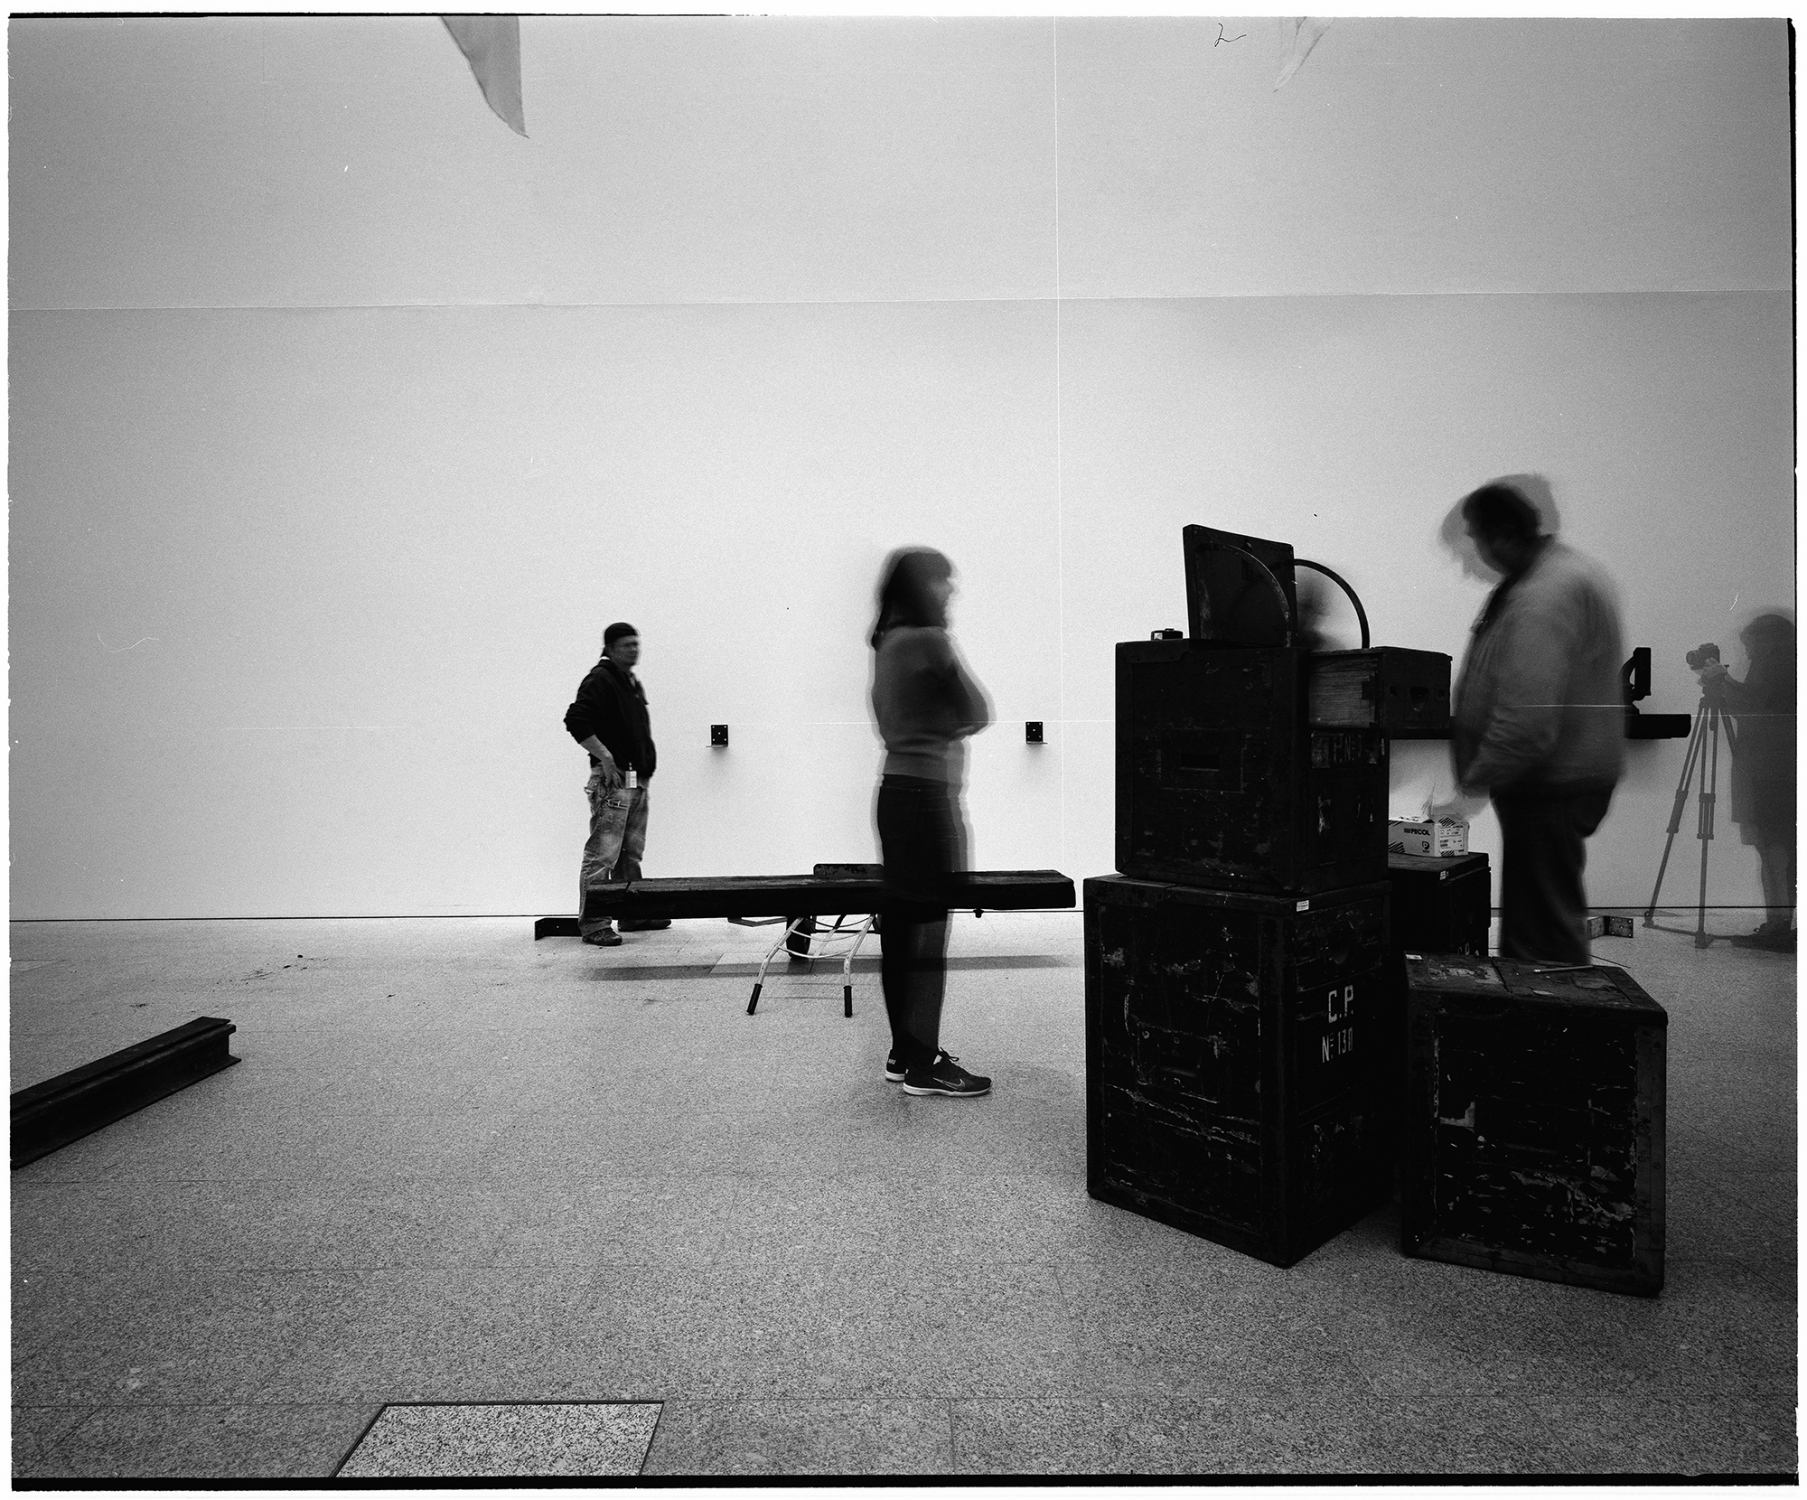 Carla Filipe at Berardo Museum, instaling a solo exhibition, Lisbon, Portugal., 2014. This image was made with black and white  film and Mamyia 7II camera, in 6x7 format. This numbered copied was processed in Ilford FB glossy paper, 50x60cm.